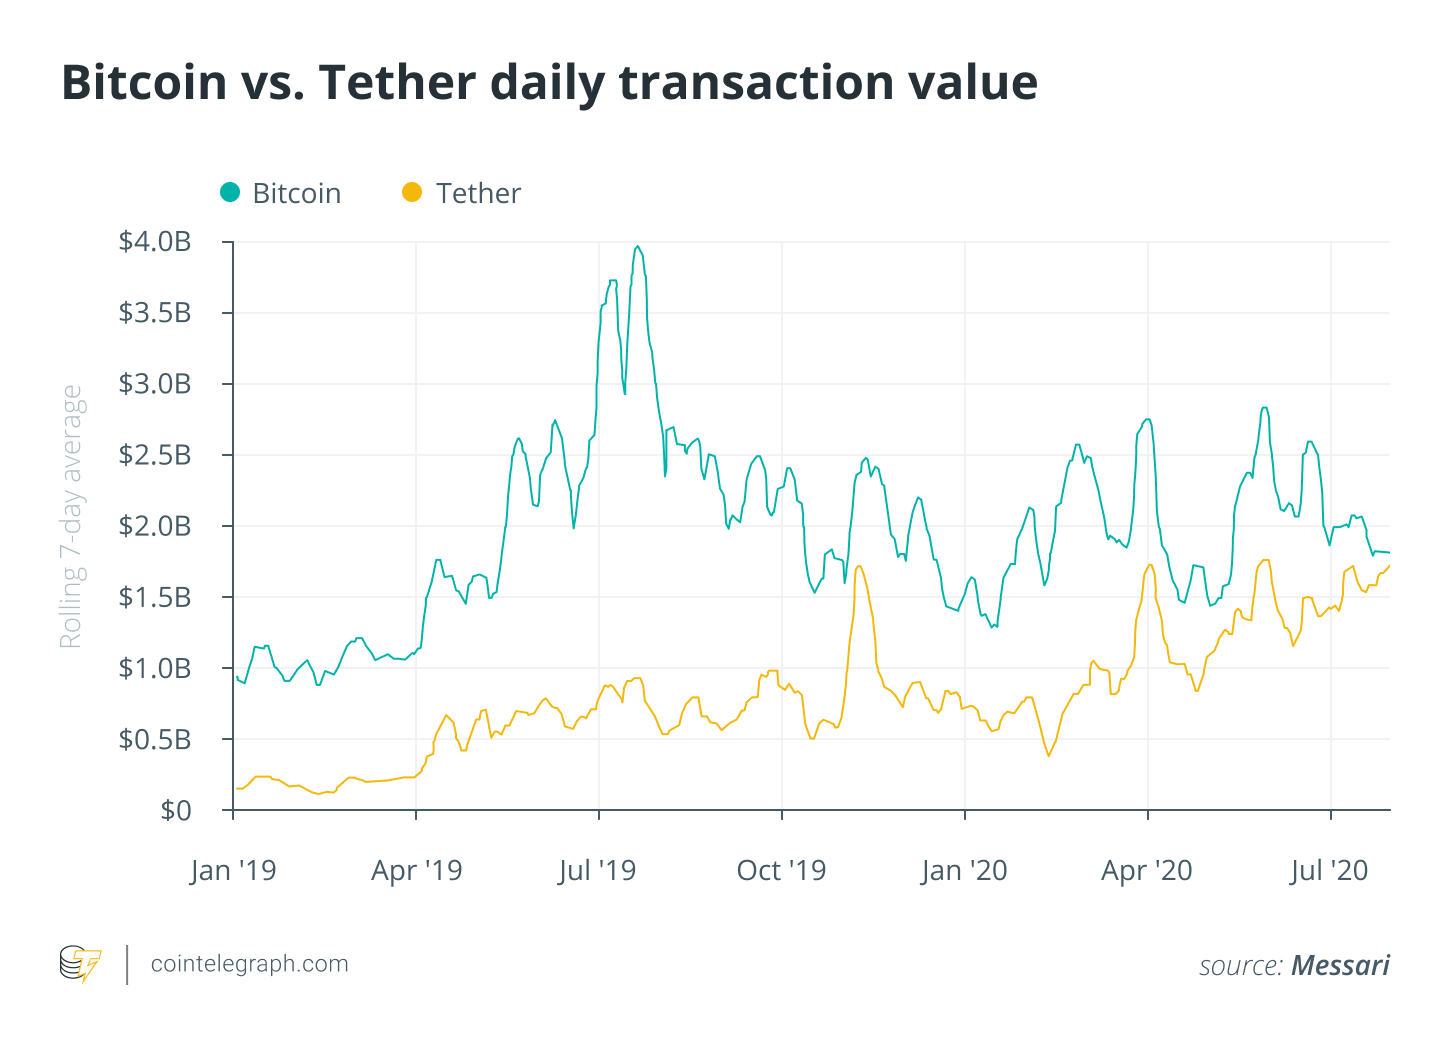 Bitcoin vs Tether daily transaction value